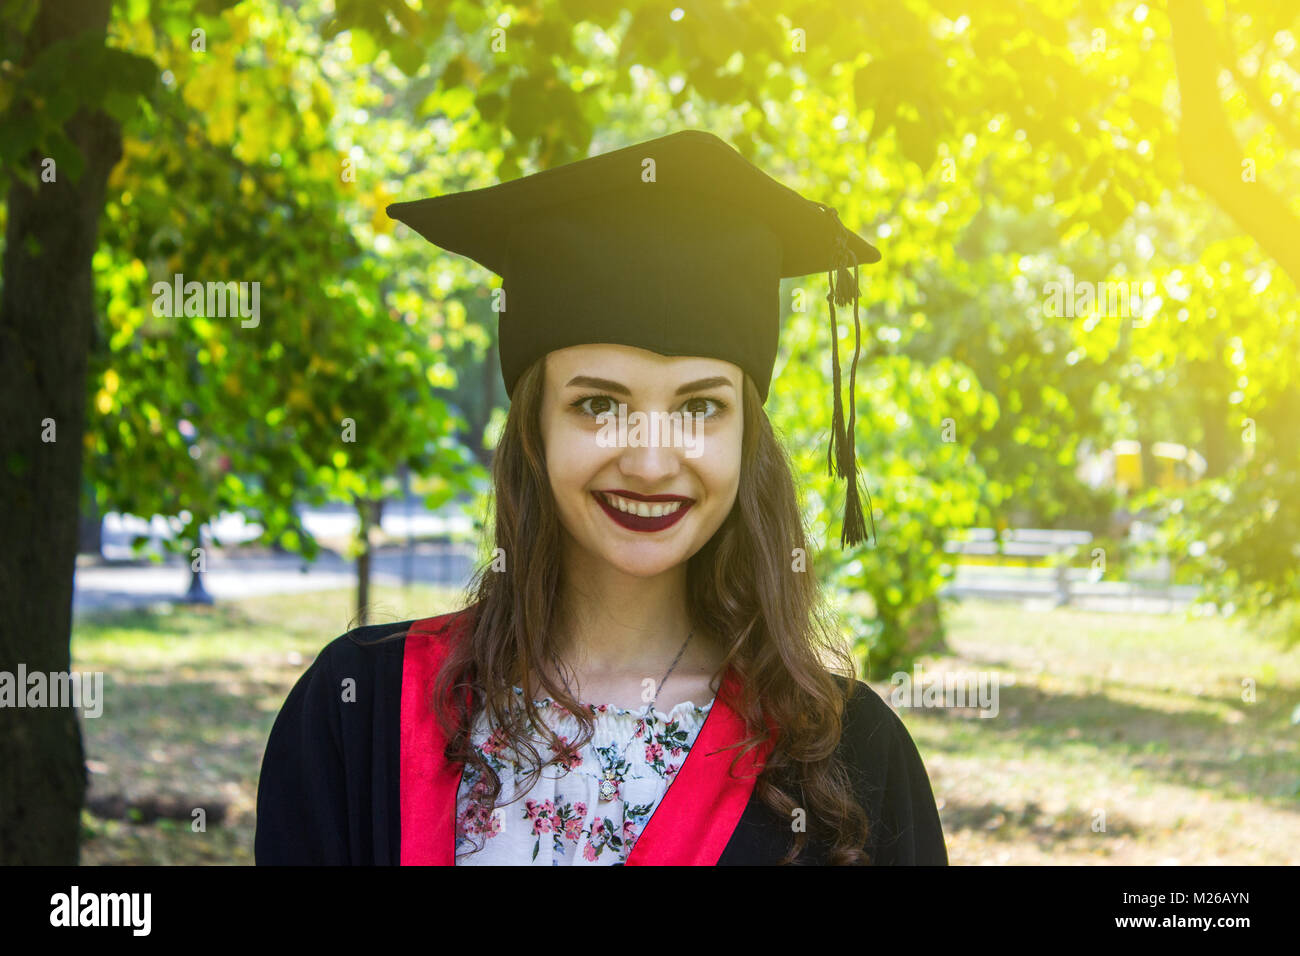 Happy woman on her graduation day. University, education and happy people - concept. - Stock Image